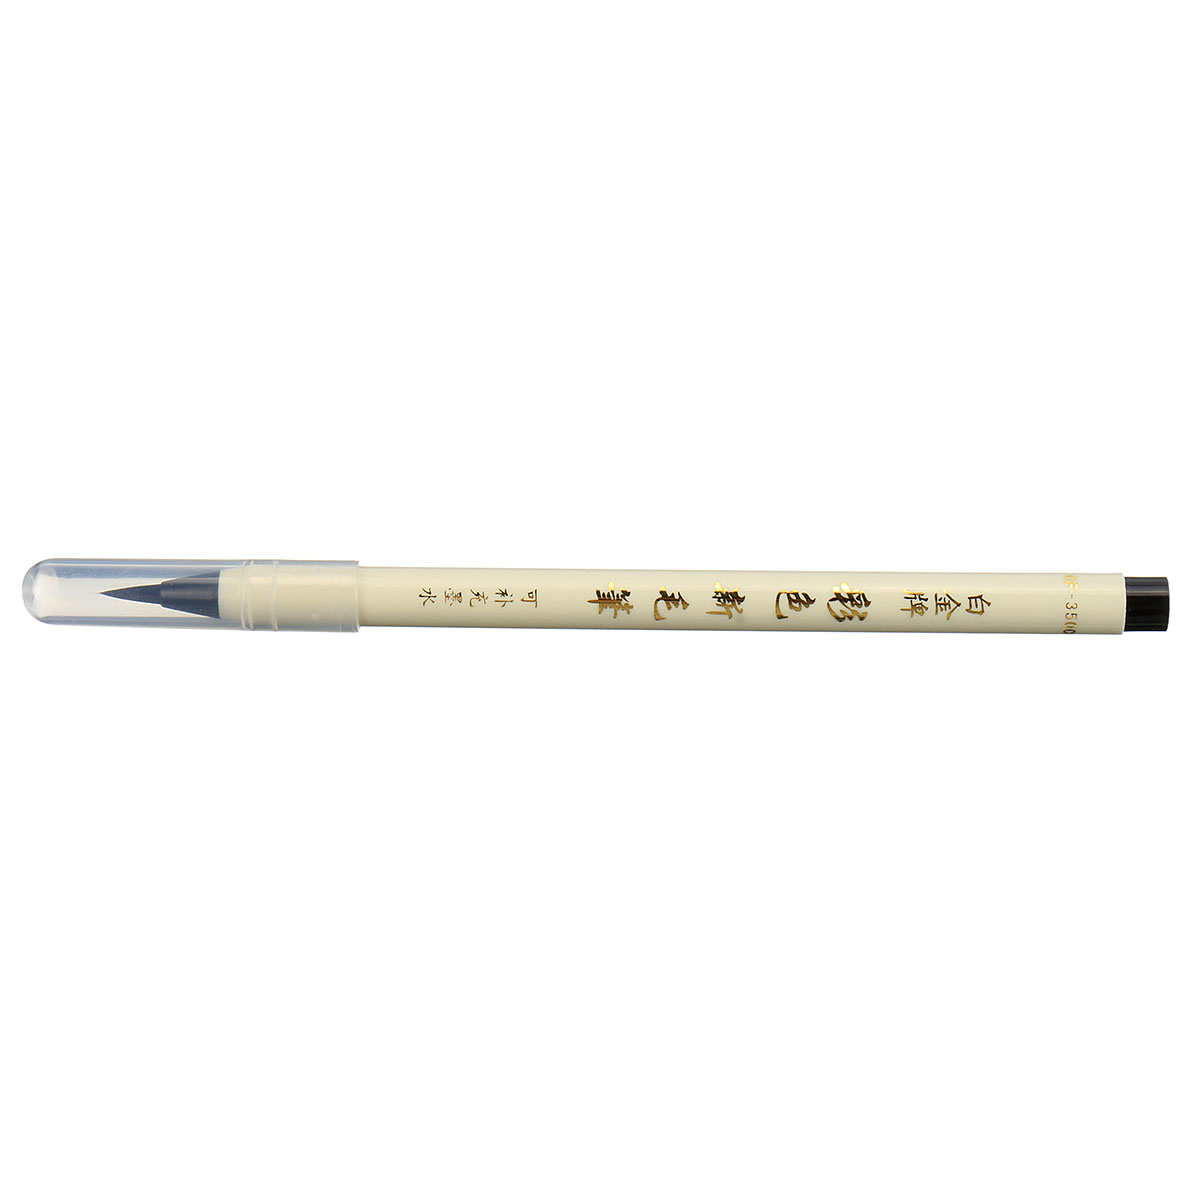 S F Comics Cartoon Pen Calligraphy Art Painting Brush: drawing with calligraphy pens